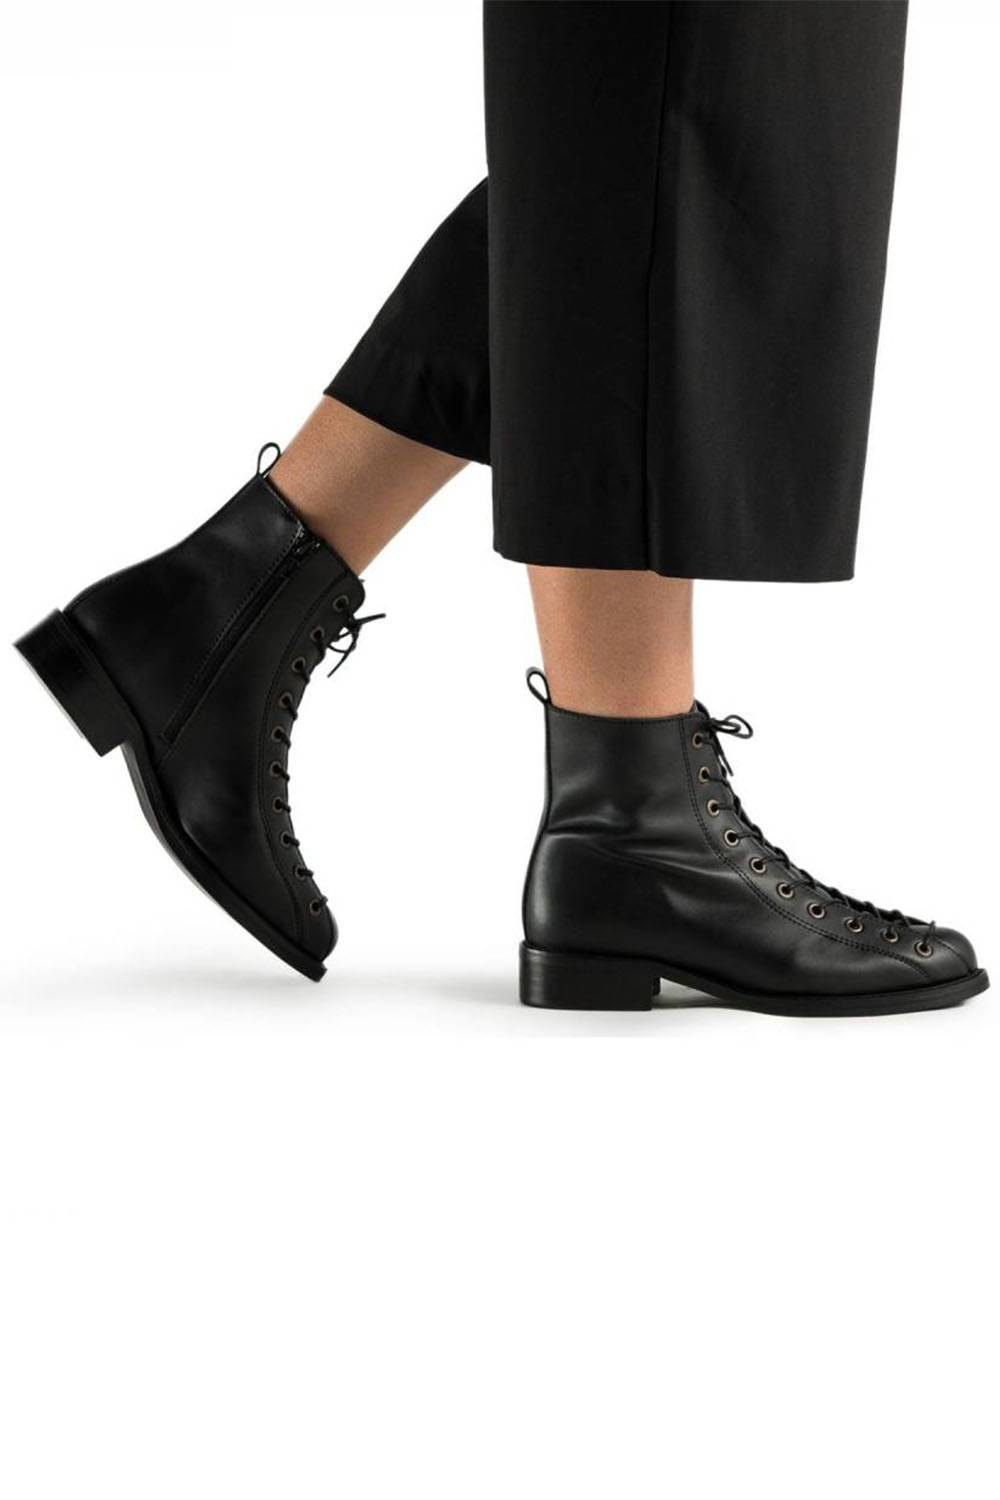 nae vegan shoes leather boots